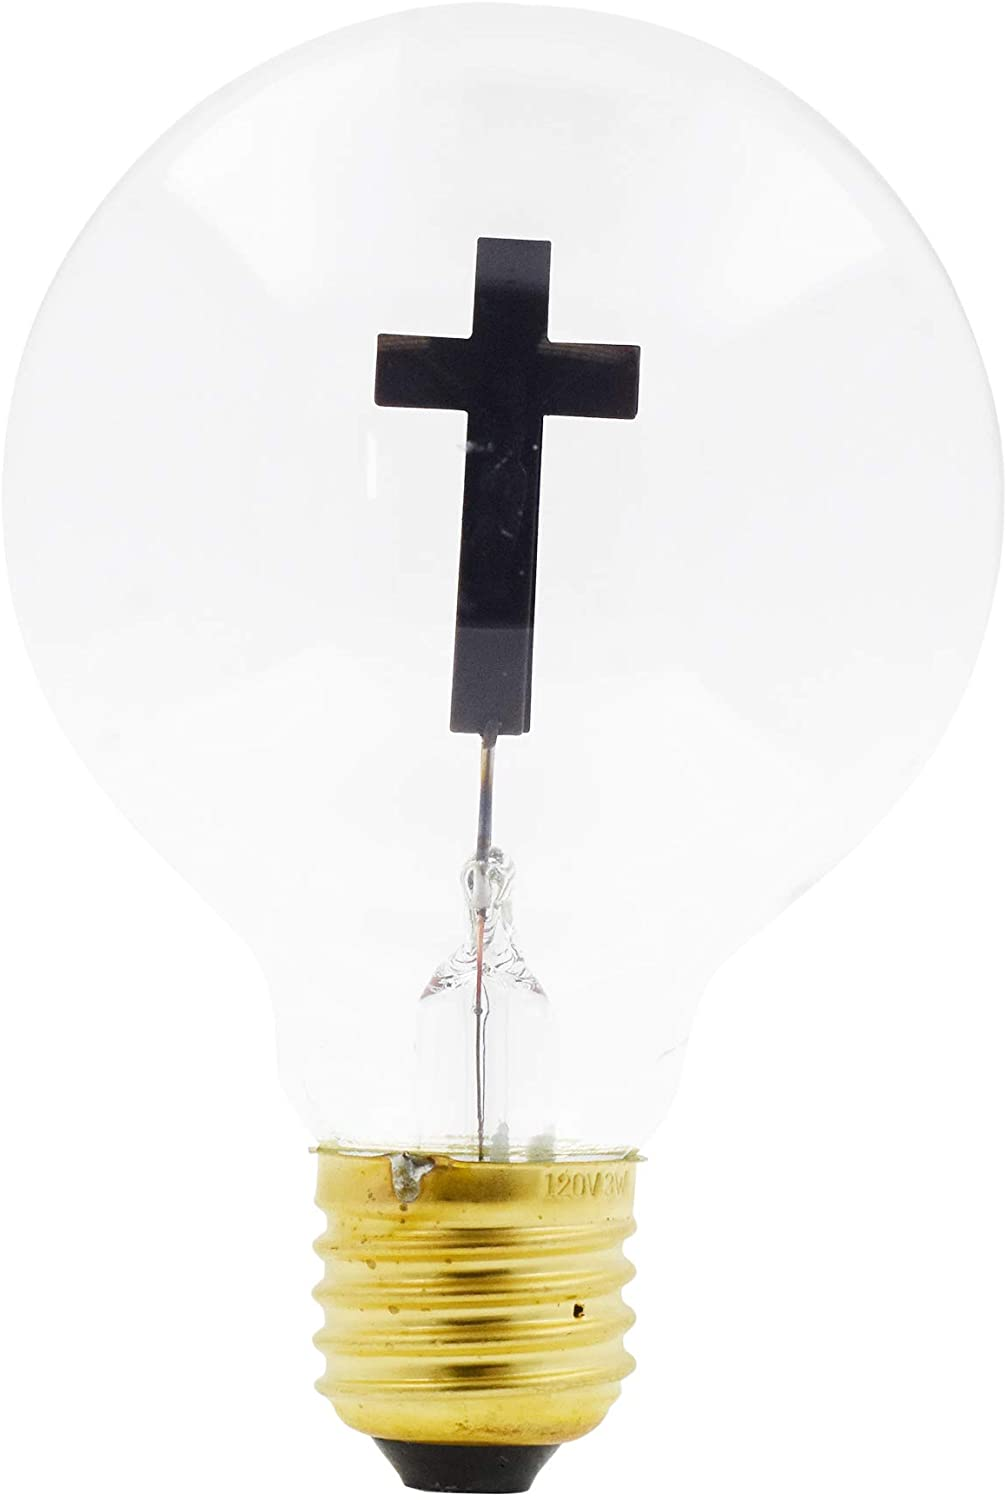 Christian Light Bulb Crucifix Bulb Jesus on The Cross Catholic Novelty Bulb 3W 120V for Pendant String Night Light by Mandala Crafts